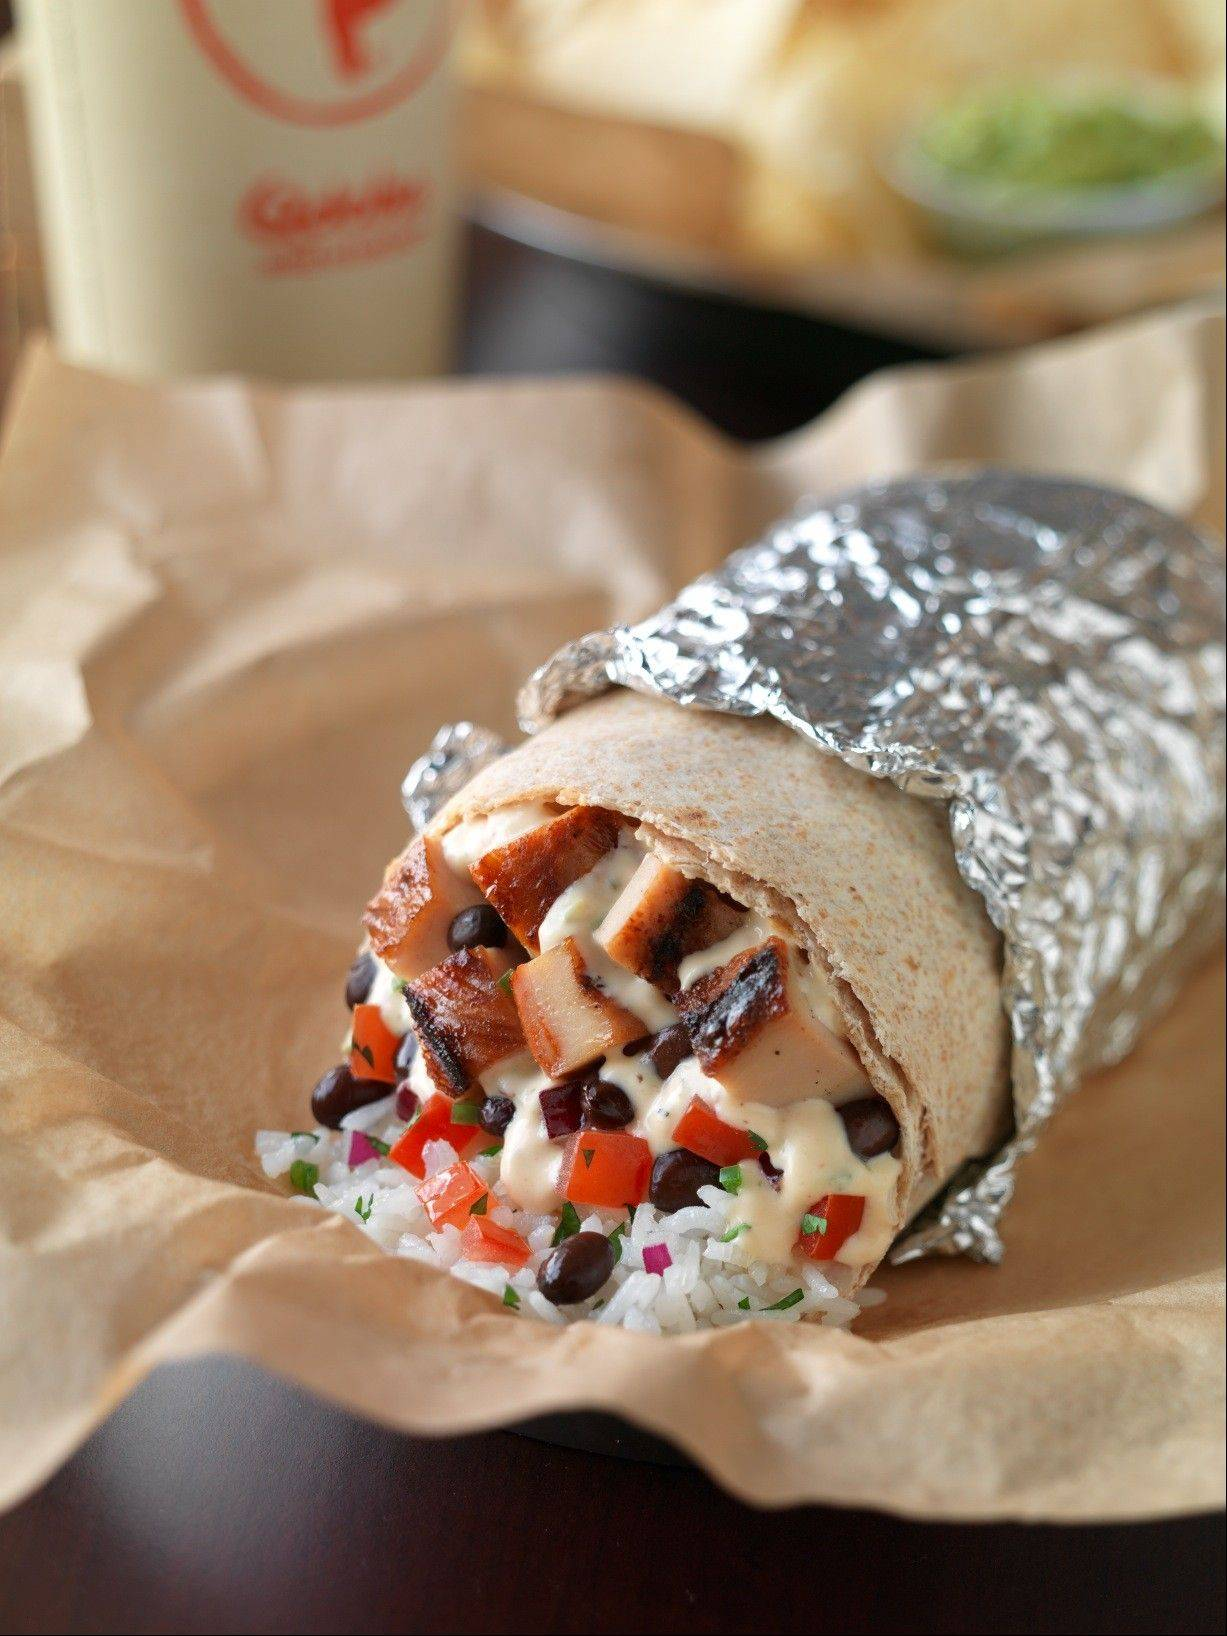 Try Qdoba Mexican Grill's chicken queso burrito during a sneak-preview fundraiser to benefit Share Our Strength's Dine Out For No Kid Hungry campaign.